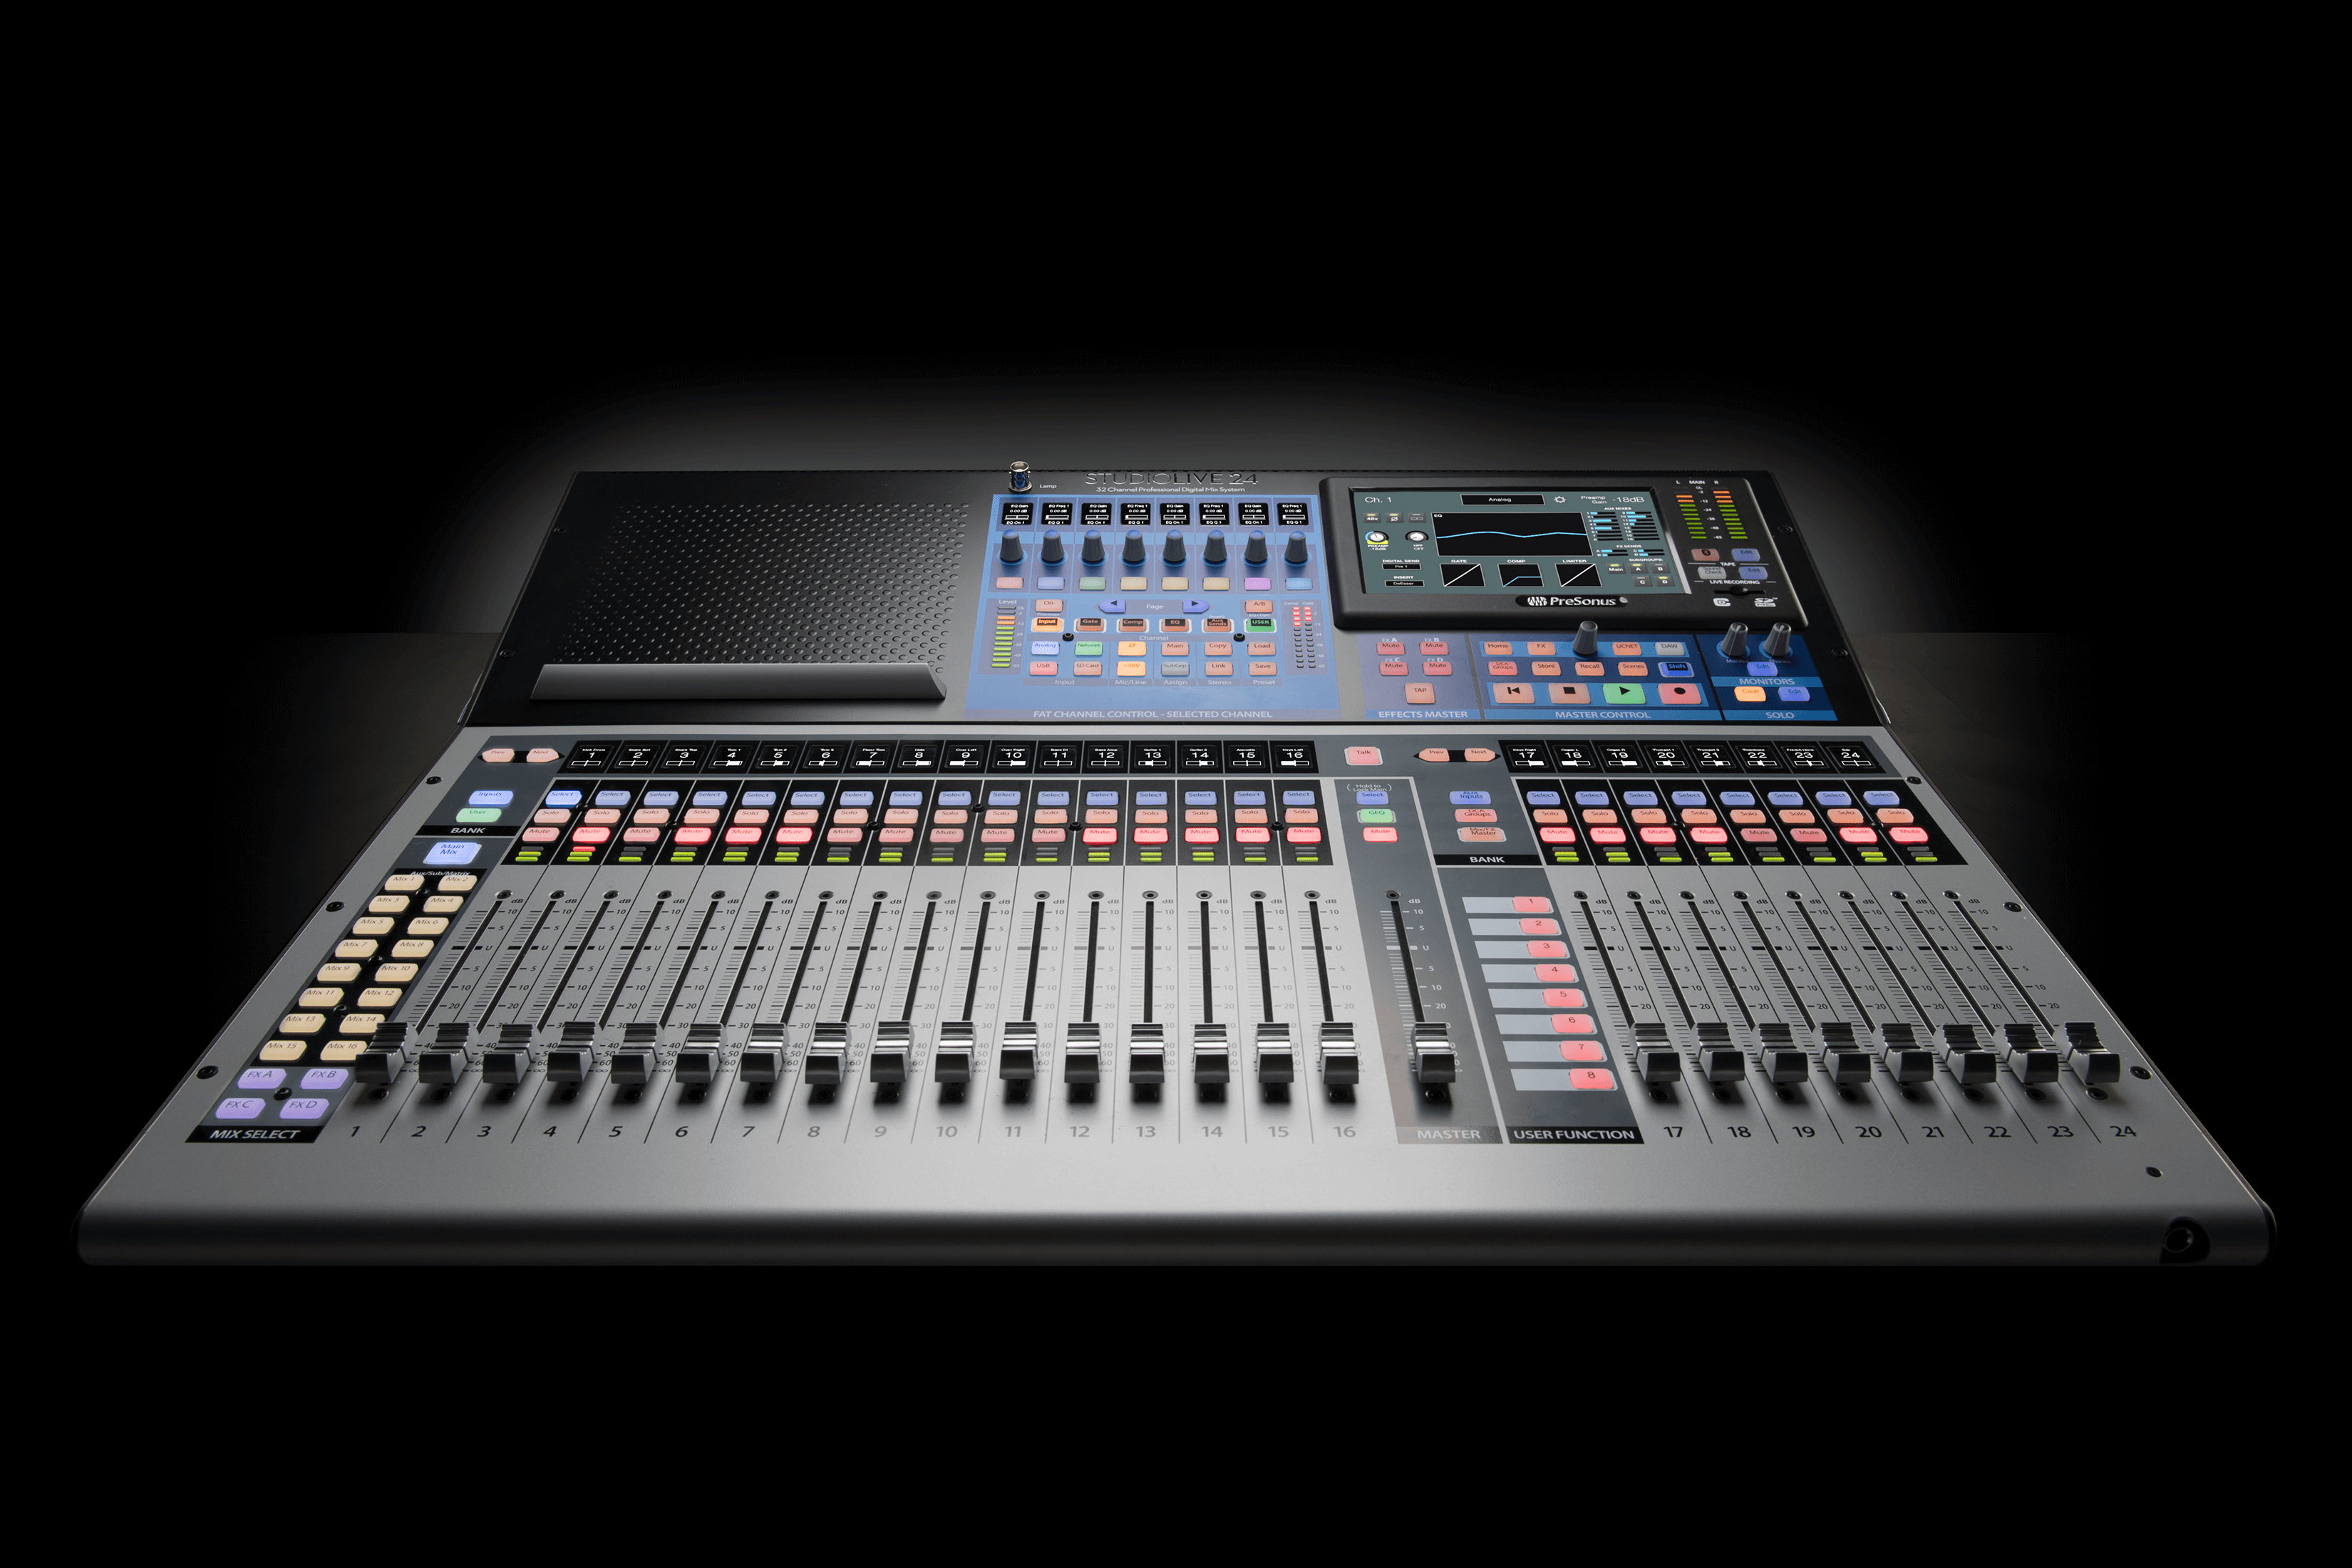 presonus introduces studiolive 24 digital console recorder press releases presonus. Black Bedroom Furniture Sets. Home Design Ideas